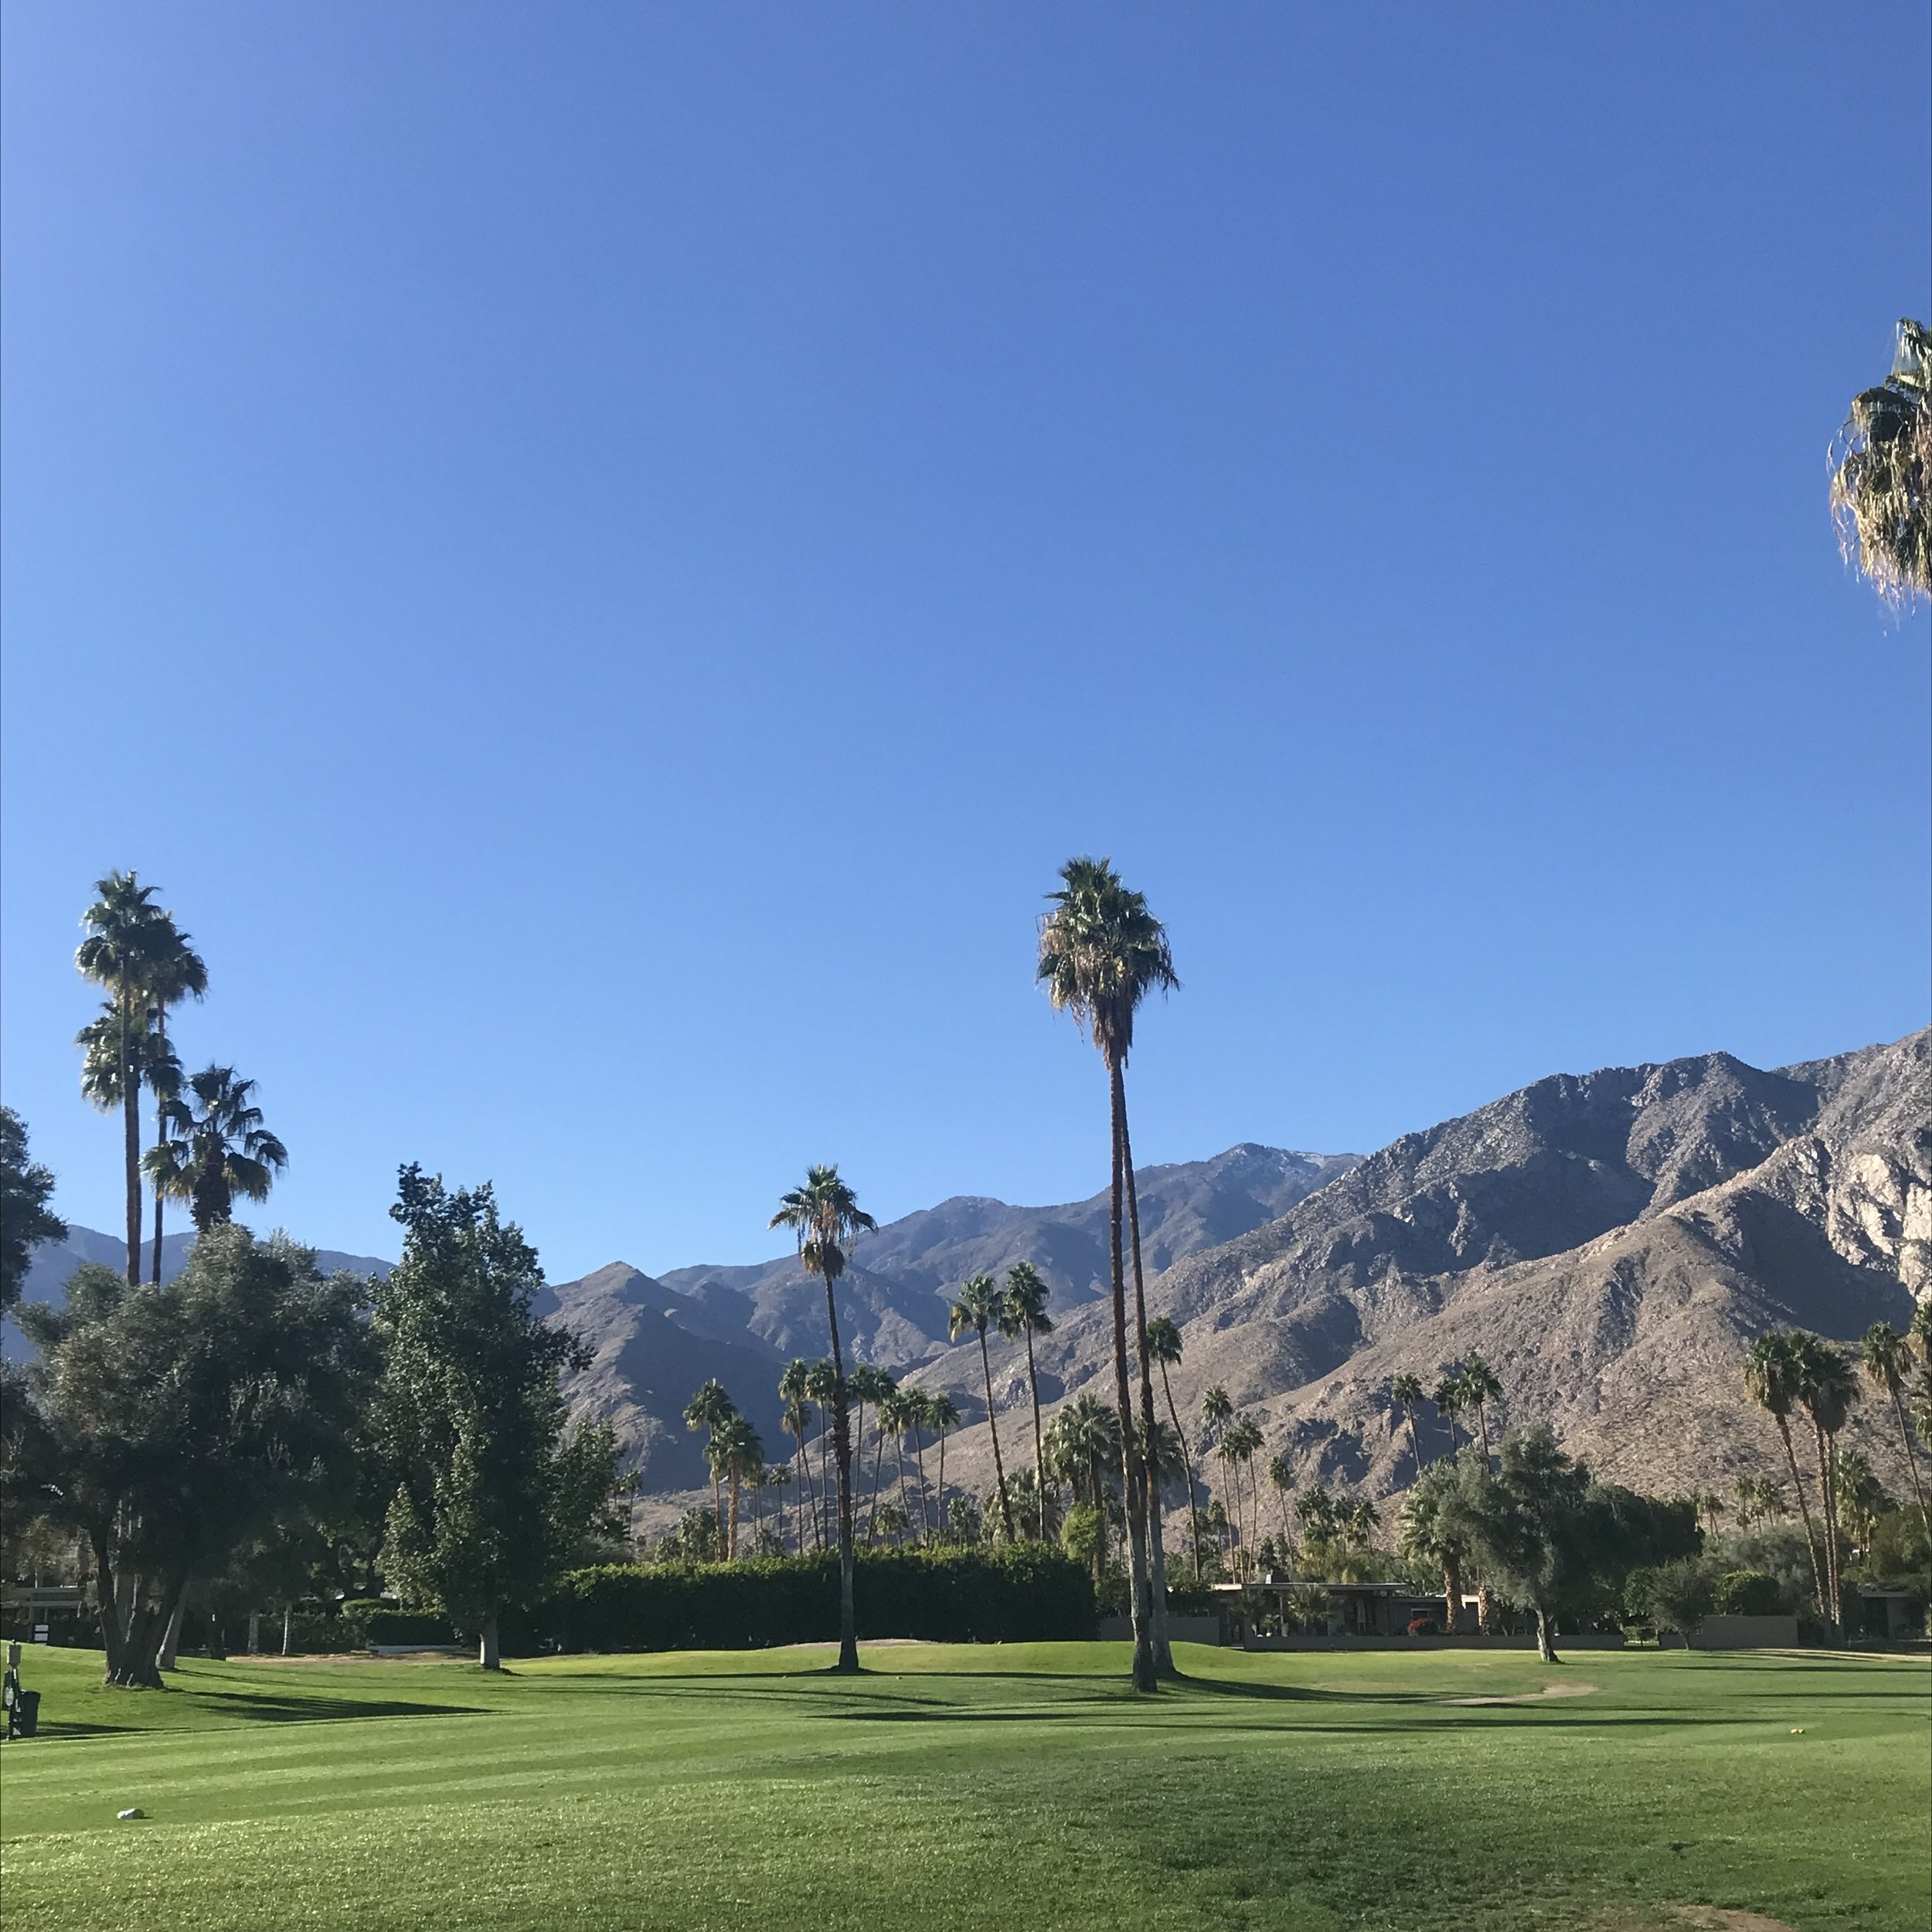 Retreat Photobook - Our 2-day Palm Spring whirlwind